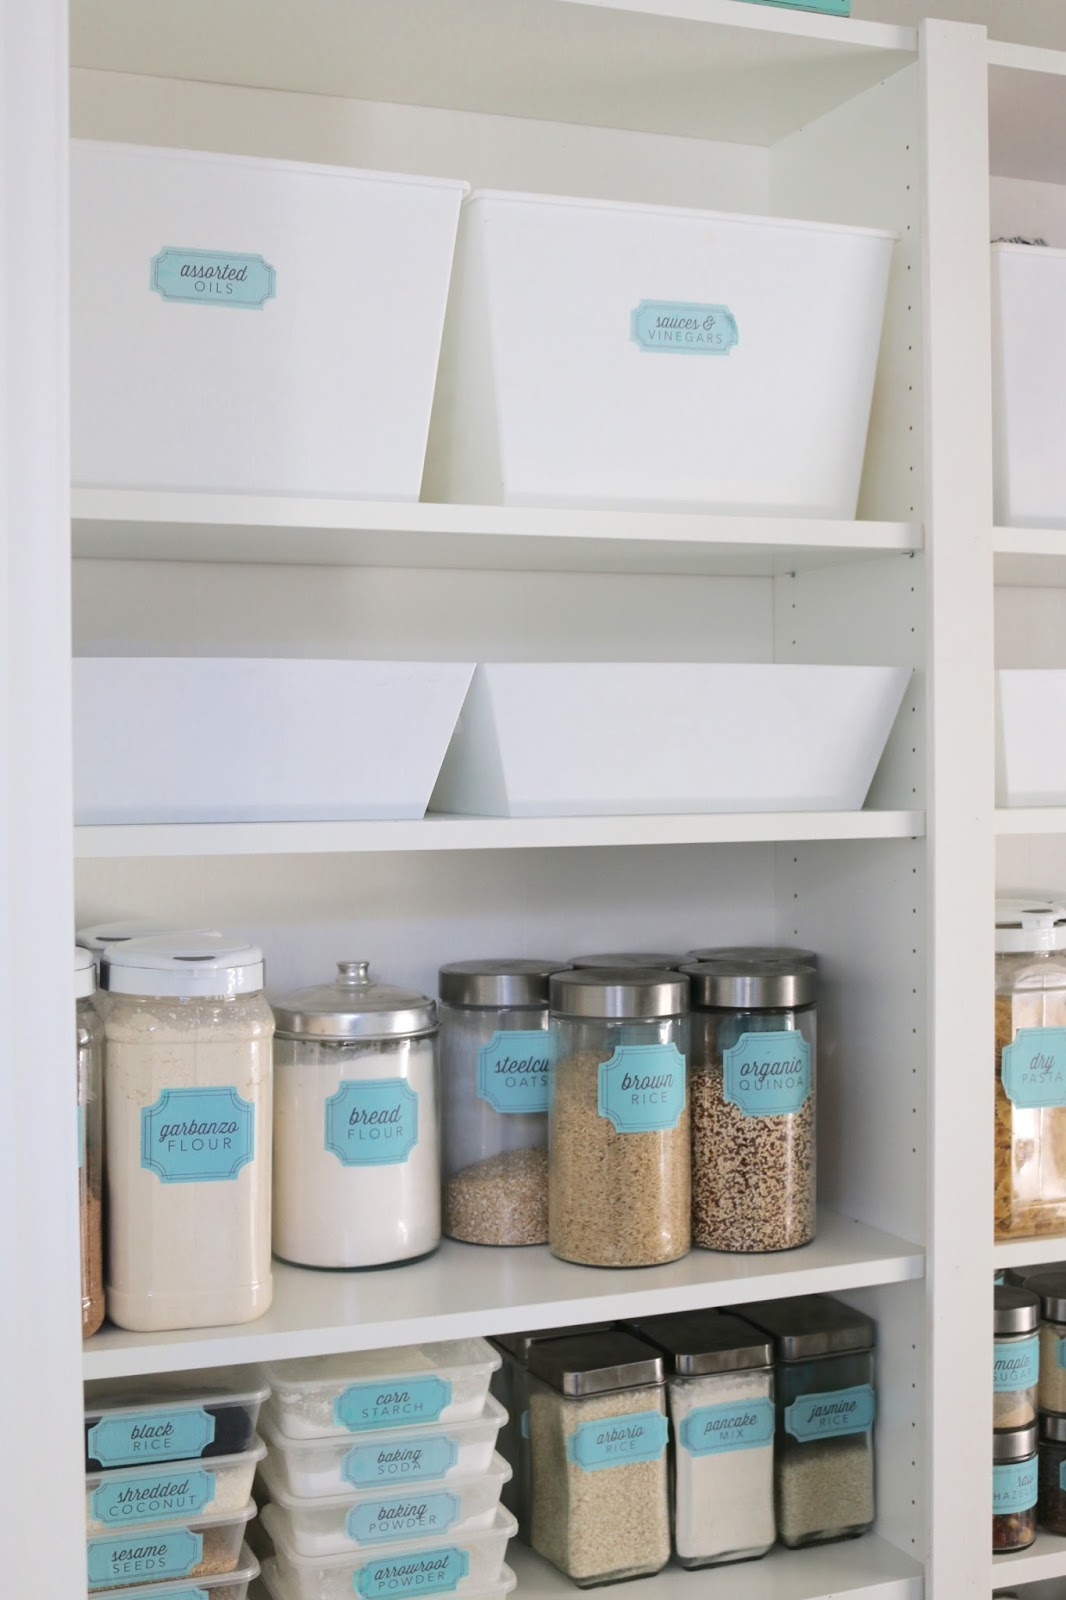 Pantry Makeover! Getting rid of those wire shelves with an Ikeahack